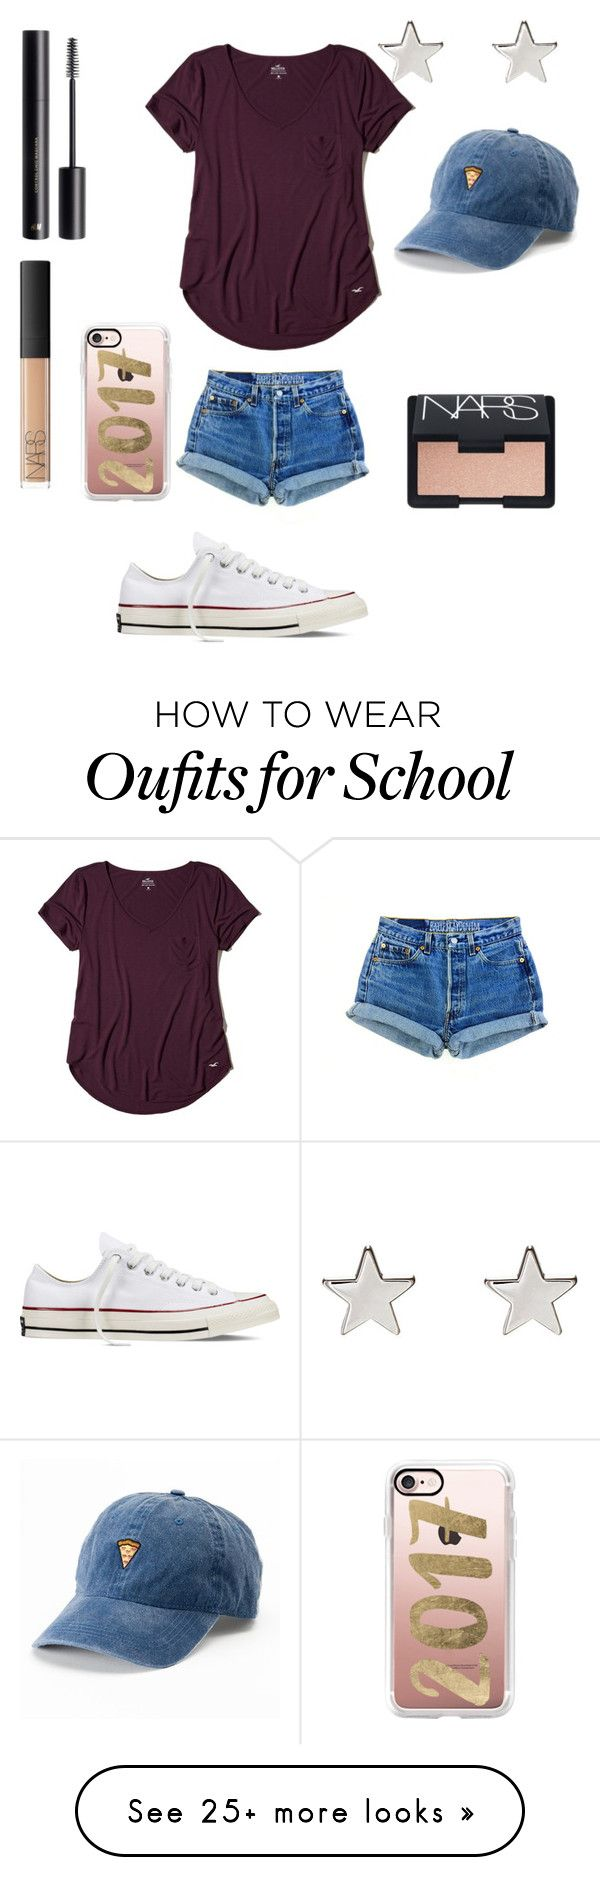 """""""simplicity"""" by milarico on Polyvore featuring Hollister Co., Converse, SO, H&M, NARS Cosmetics, Jennifer Meyer Jewelry and Casetify"""